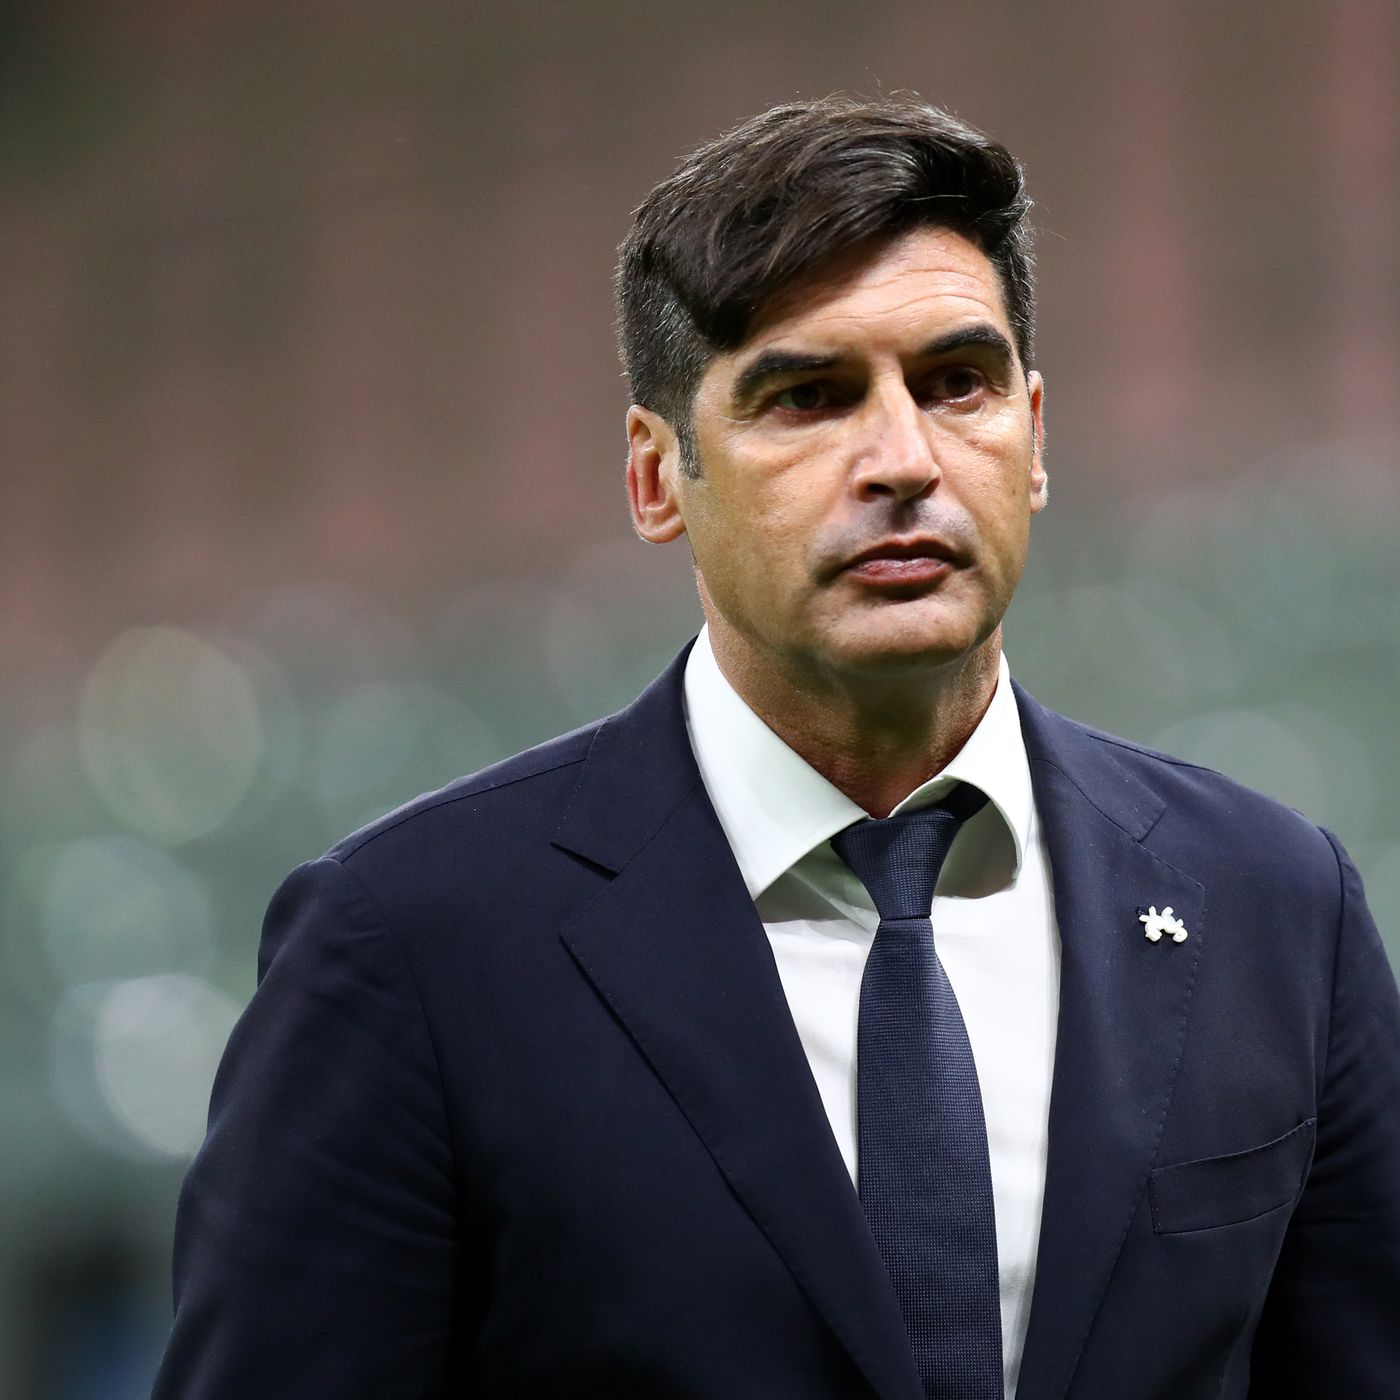 Tottenham Hotspur closing in on the appointment of Paulo Fonseca as their next manager